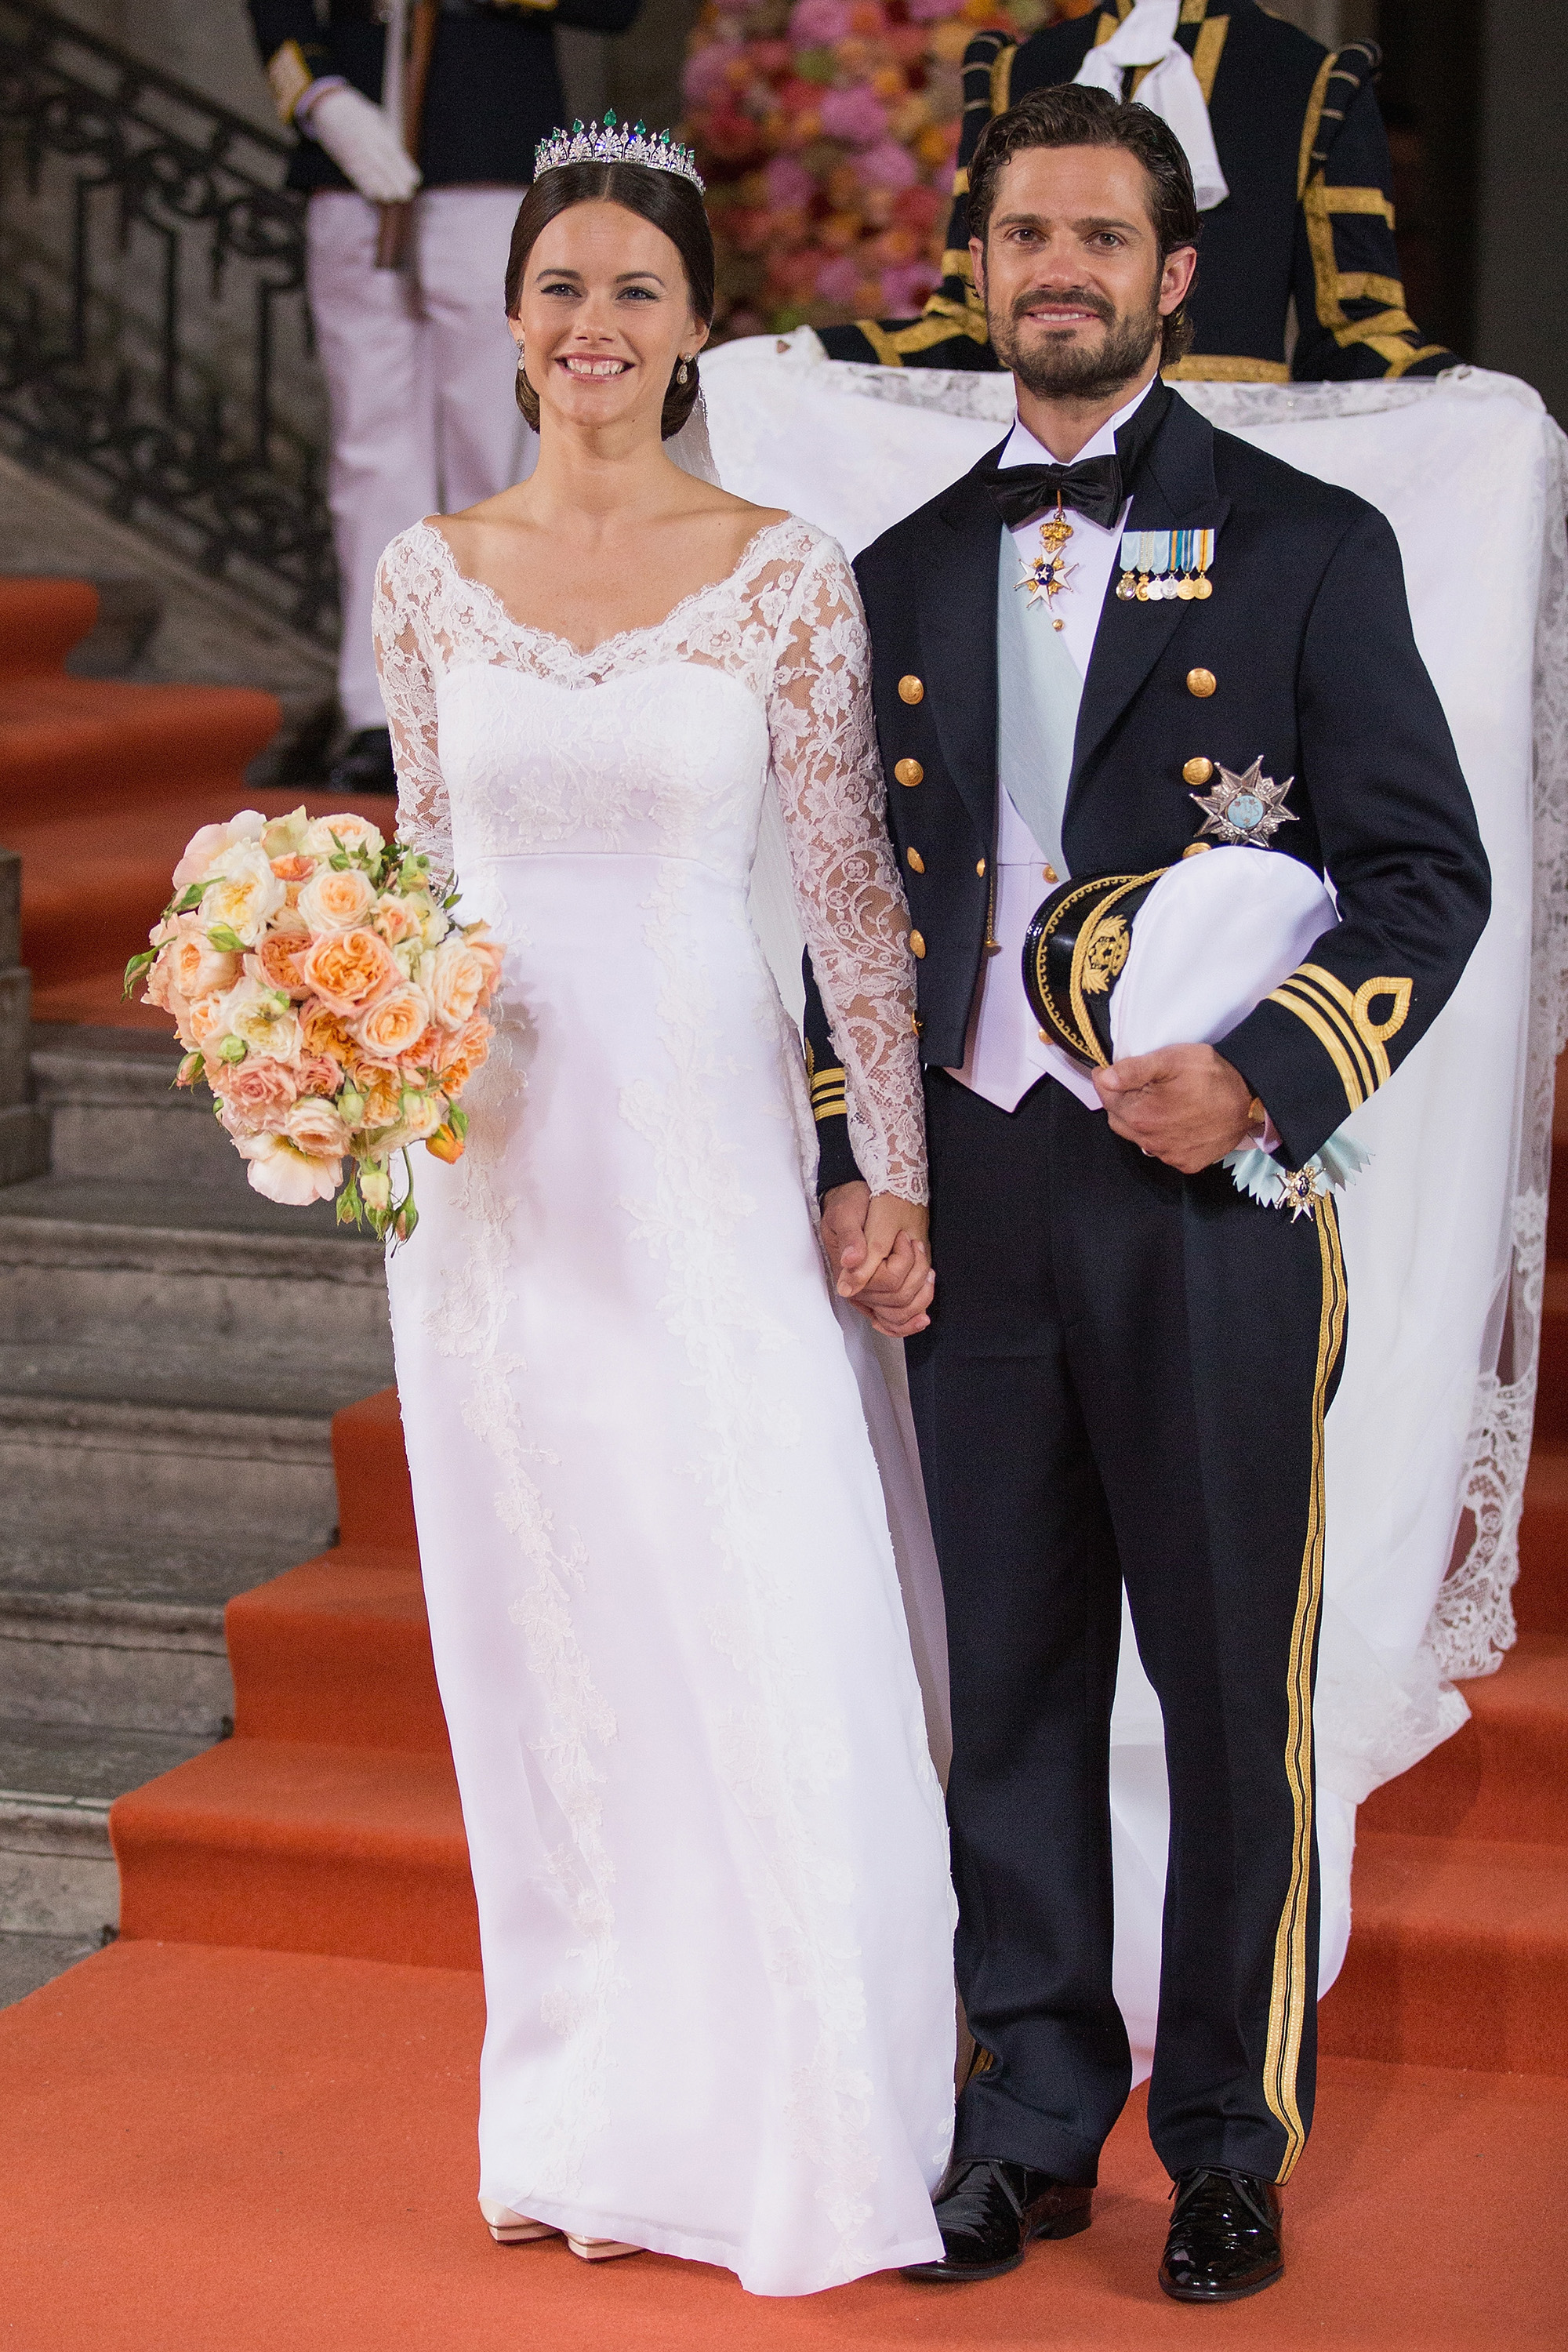 STOCKHOLM, SWEDEN - JUNE 13: Prince Carl Philip of Sweden is seen with his new wife Princess Sofia, Duchess of Varmland after their marriage ceremony on June 13, 2015 in Stockholm, Sweden. (Photo by Andreas Rentz/Getty Images)